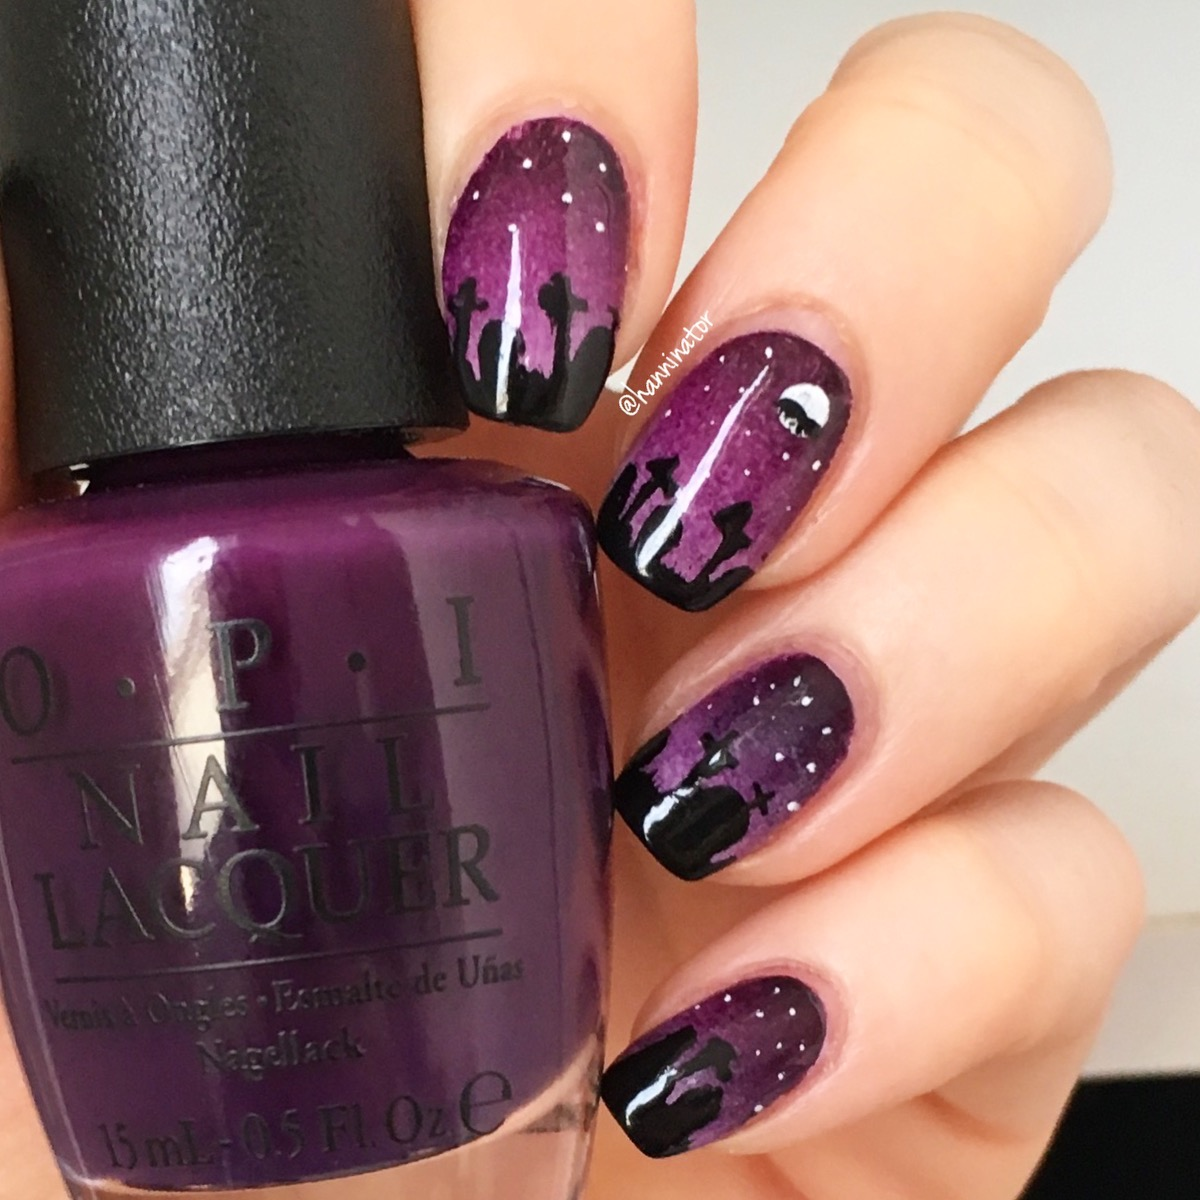 Generous Nail Art Patterns And Designs Tall Nail Art Breast Cancer Awareness Clean Nail Fungus Cause Nail Art Stamping Plates Old Glitter Gal Holographic Nail Polish PurpleOpi Nail Polish In Bulk For Cheap 5037 Forbidden Witchcraft \u2013 Hanninator